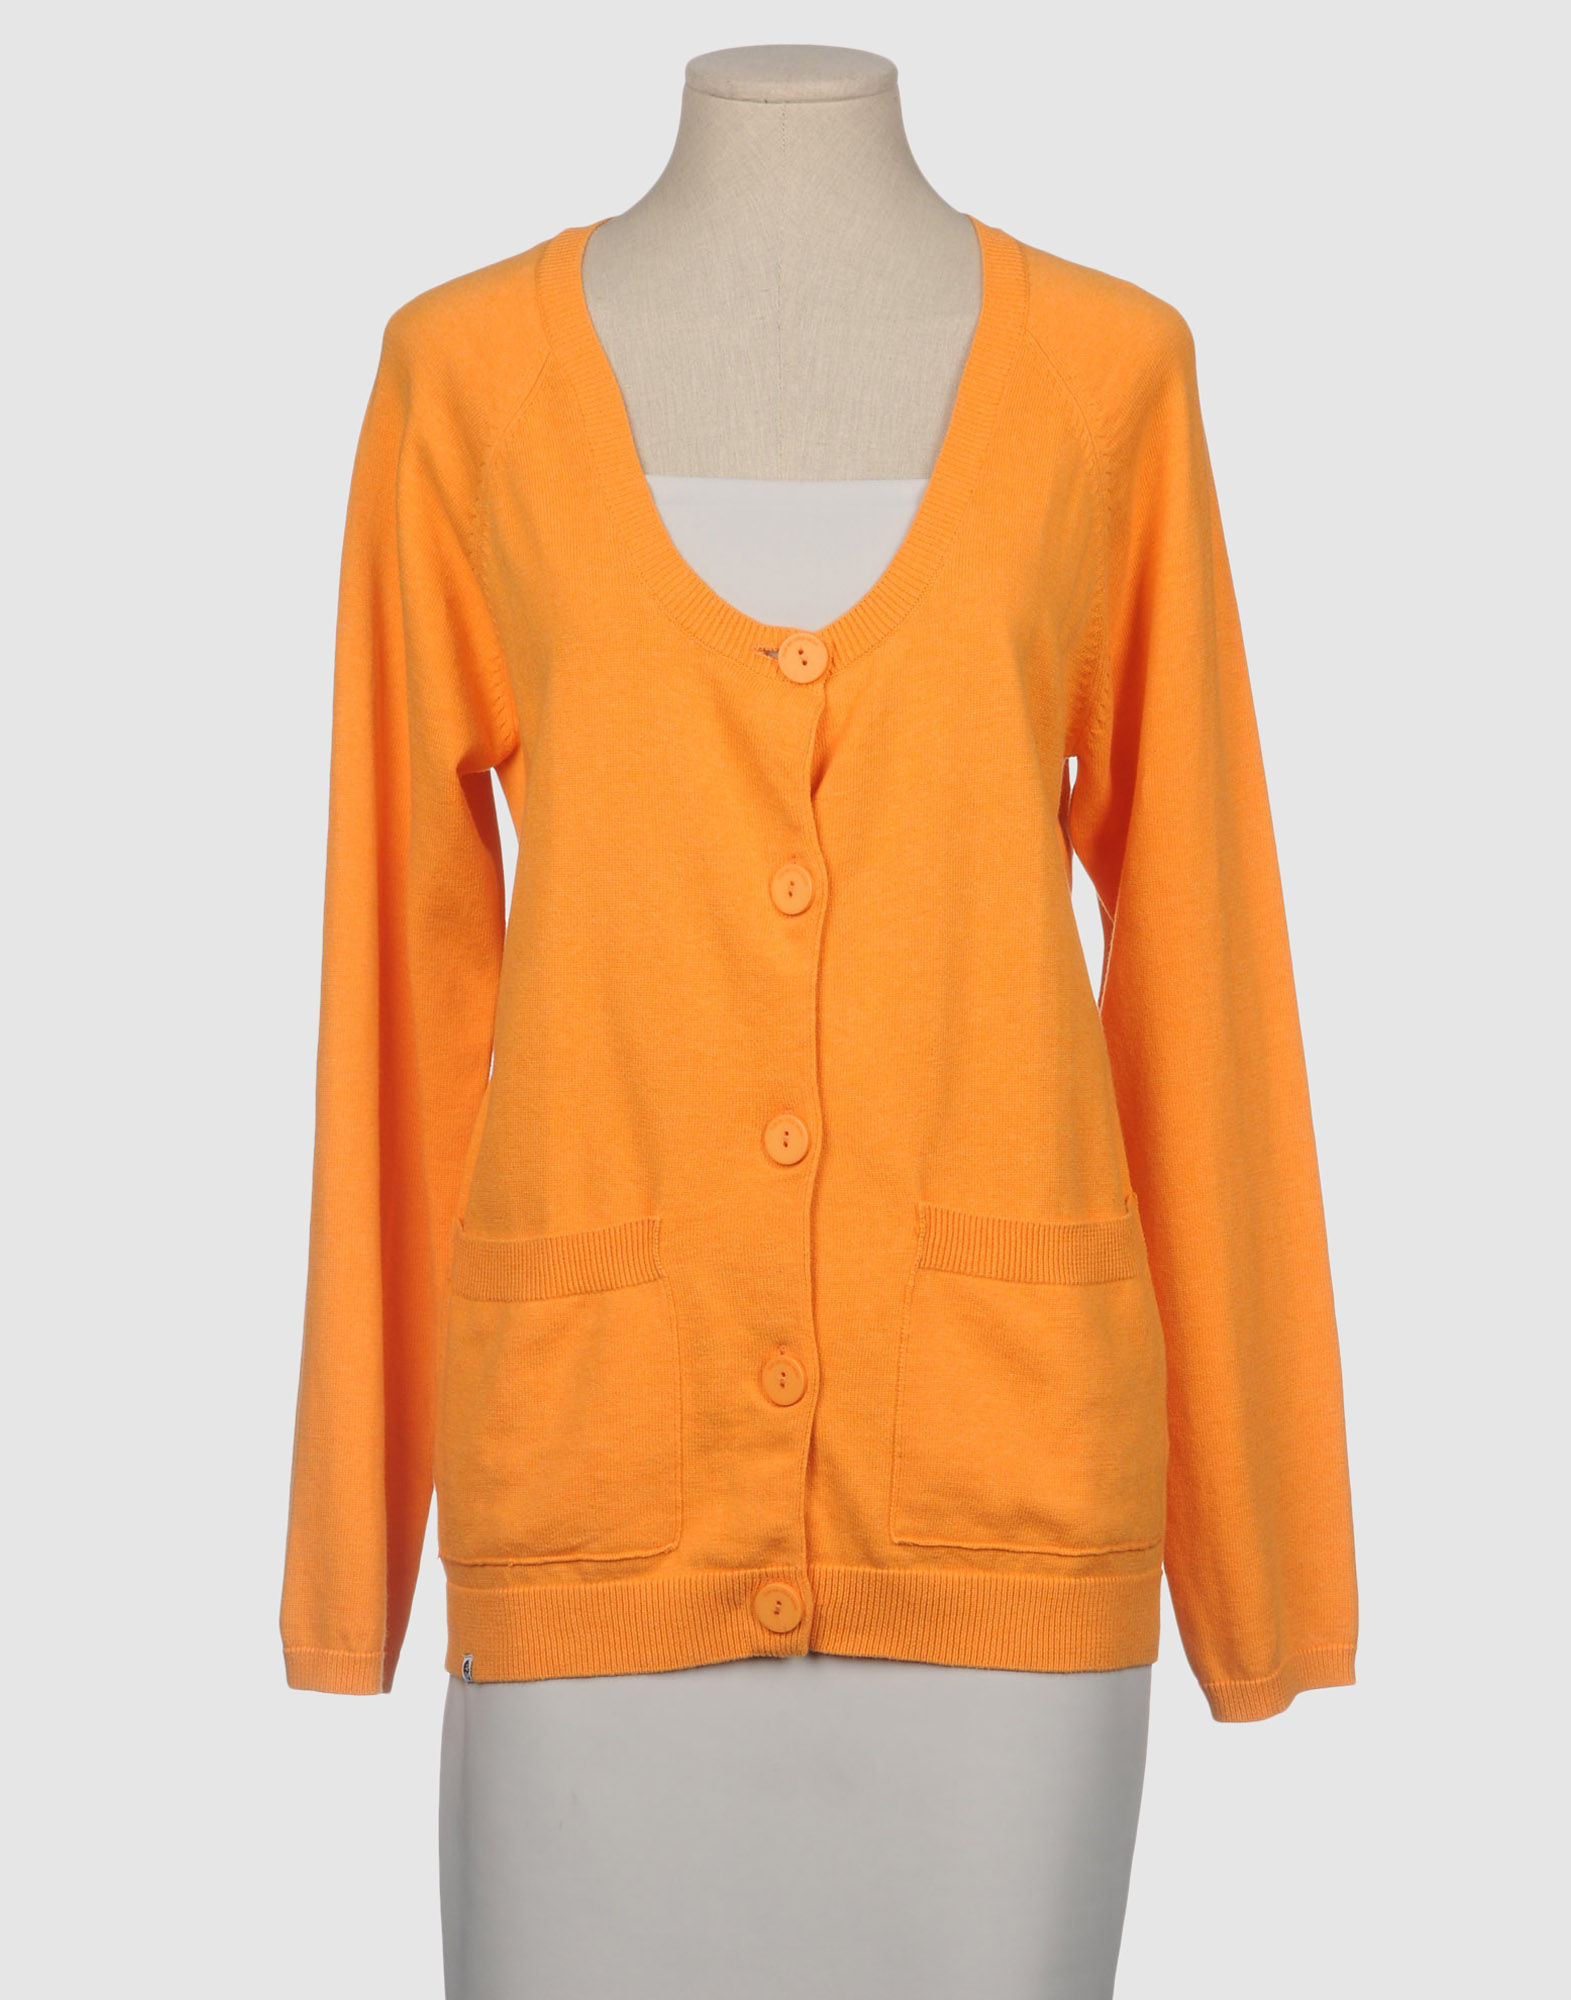 Where to buy cheap cardigans (private-dev.tkmalefashion) submitted 4 years ago by hv1. I am looking for cheap cardigans for the fall. Does anyone know of any? The cost of living in hellafornia is not good, it doesn't help that teacher salaries are mightly low either. B&M or online! Please help.